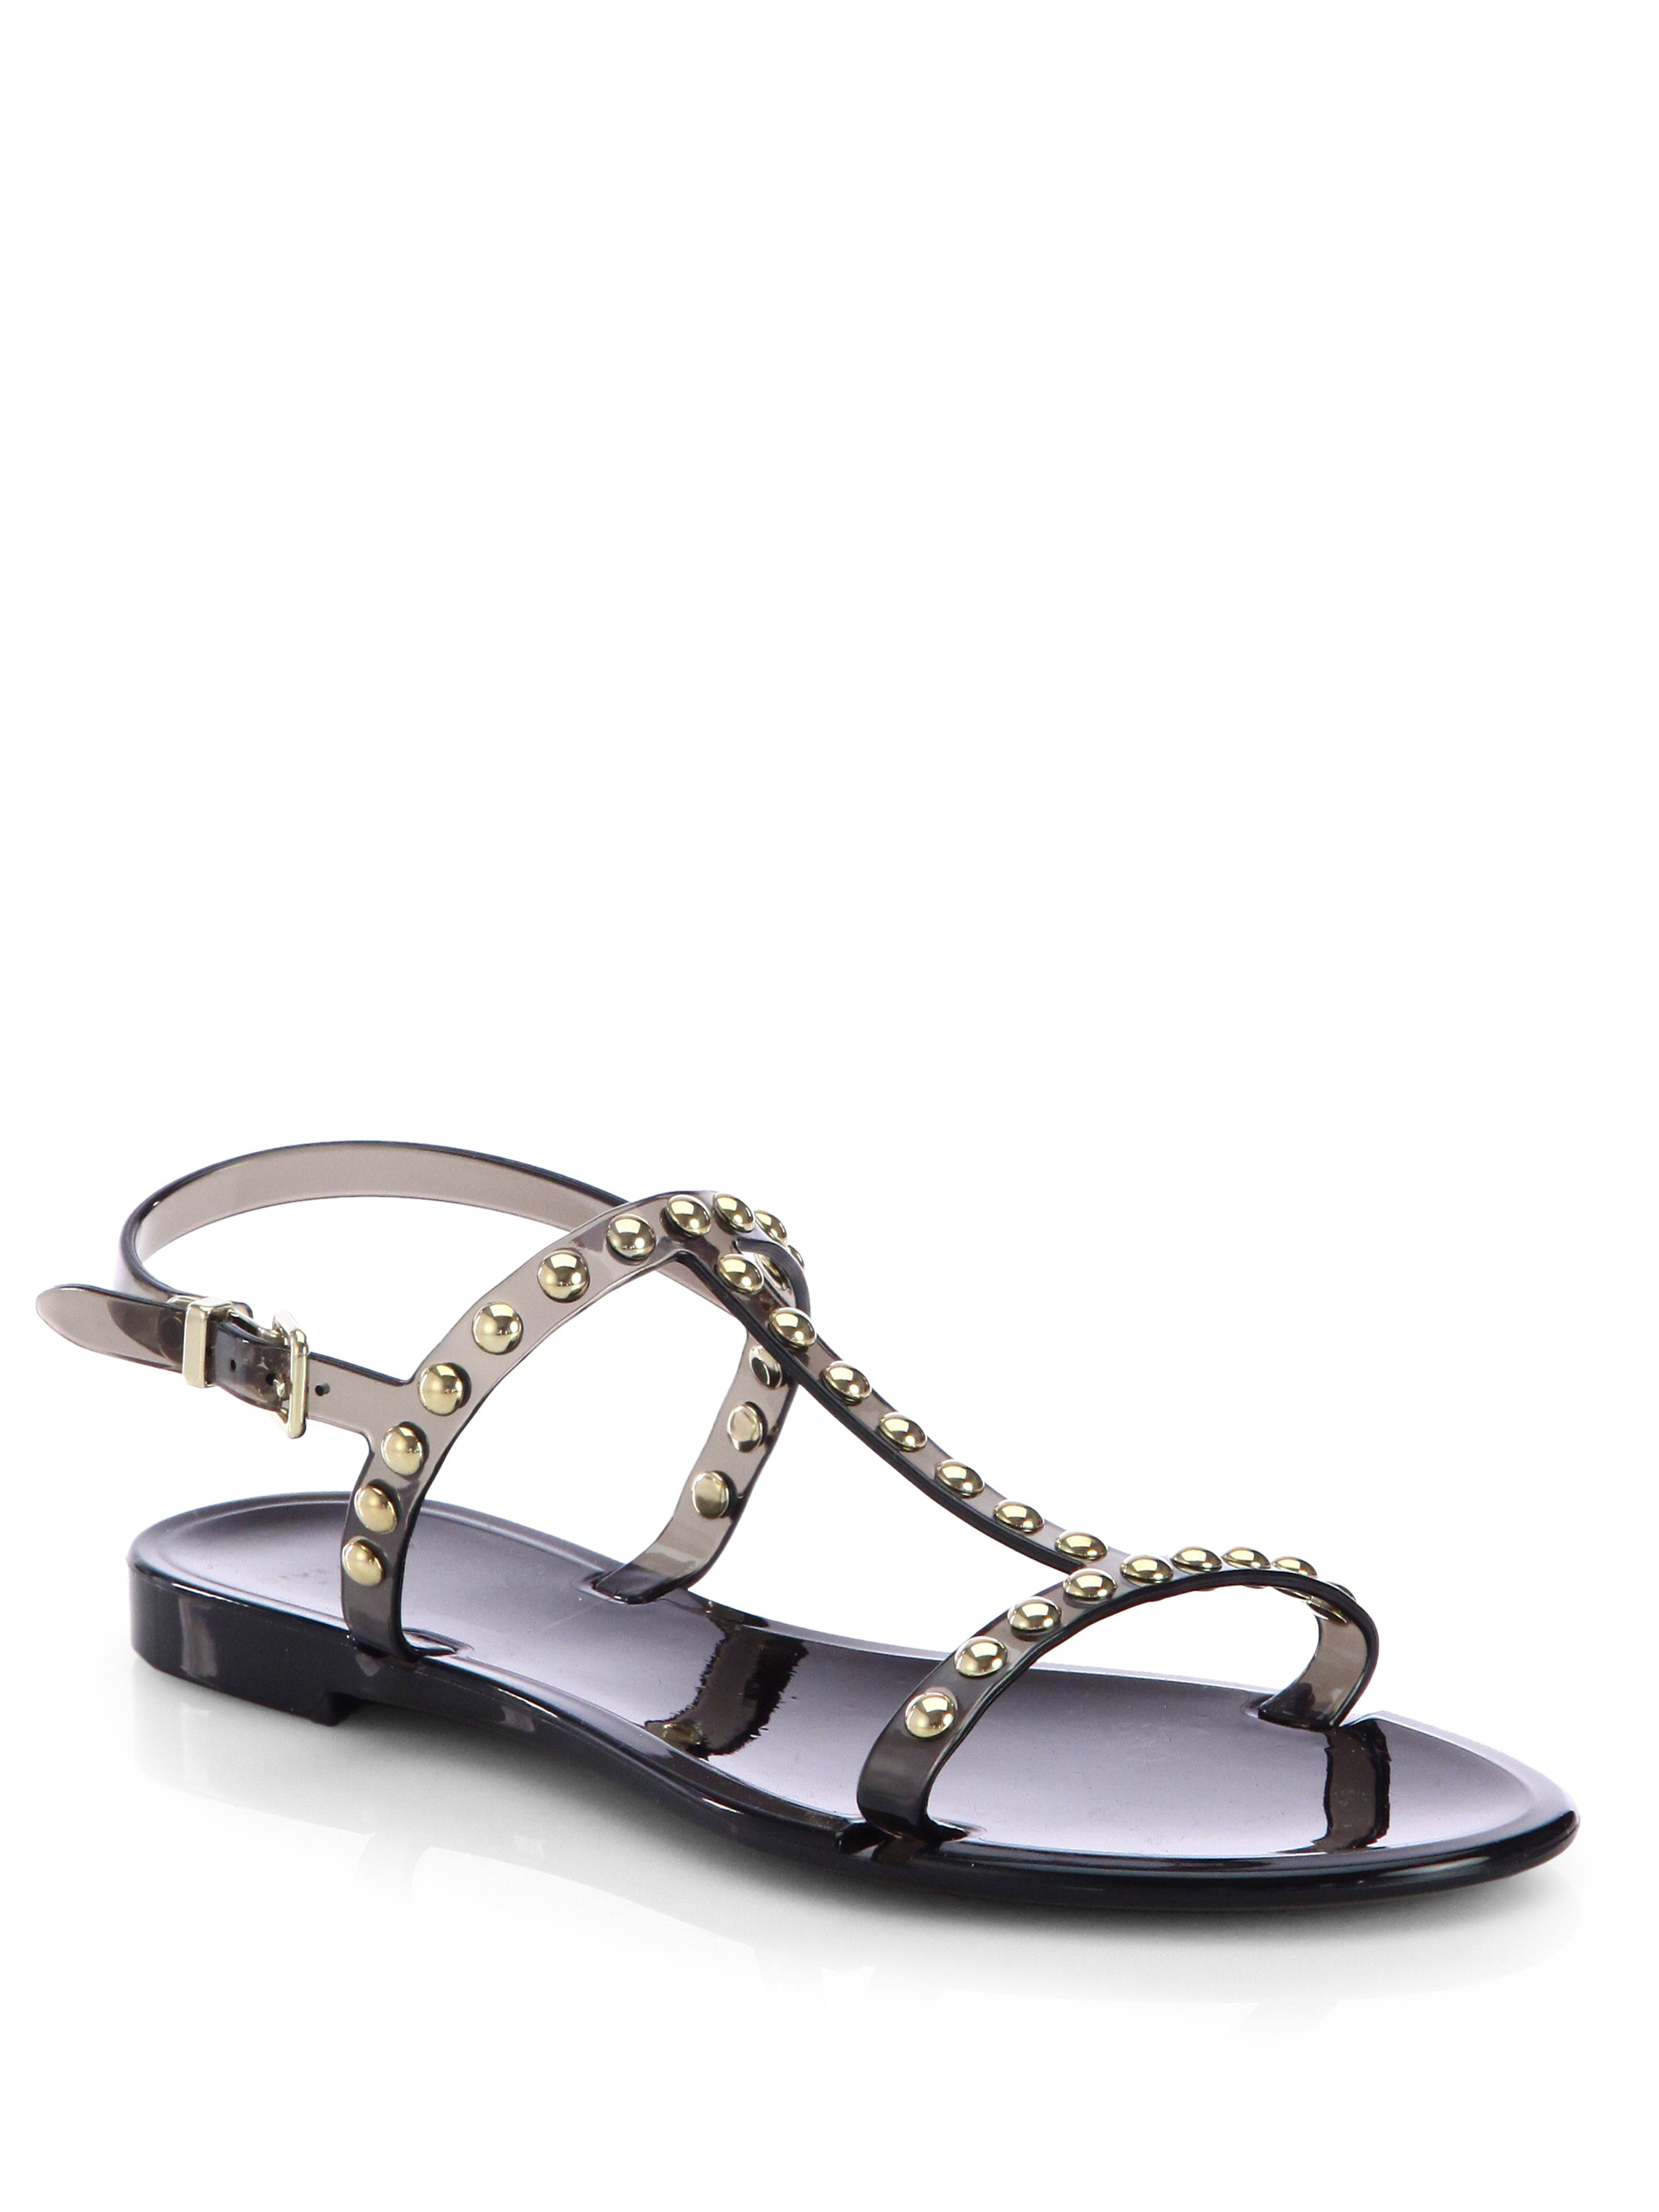 Givenchy Polyester Sandals G44g5K